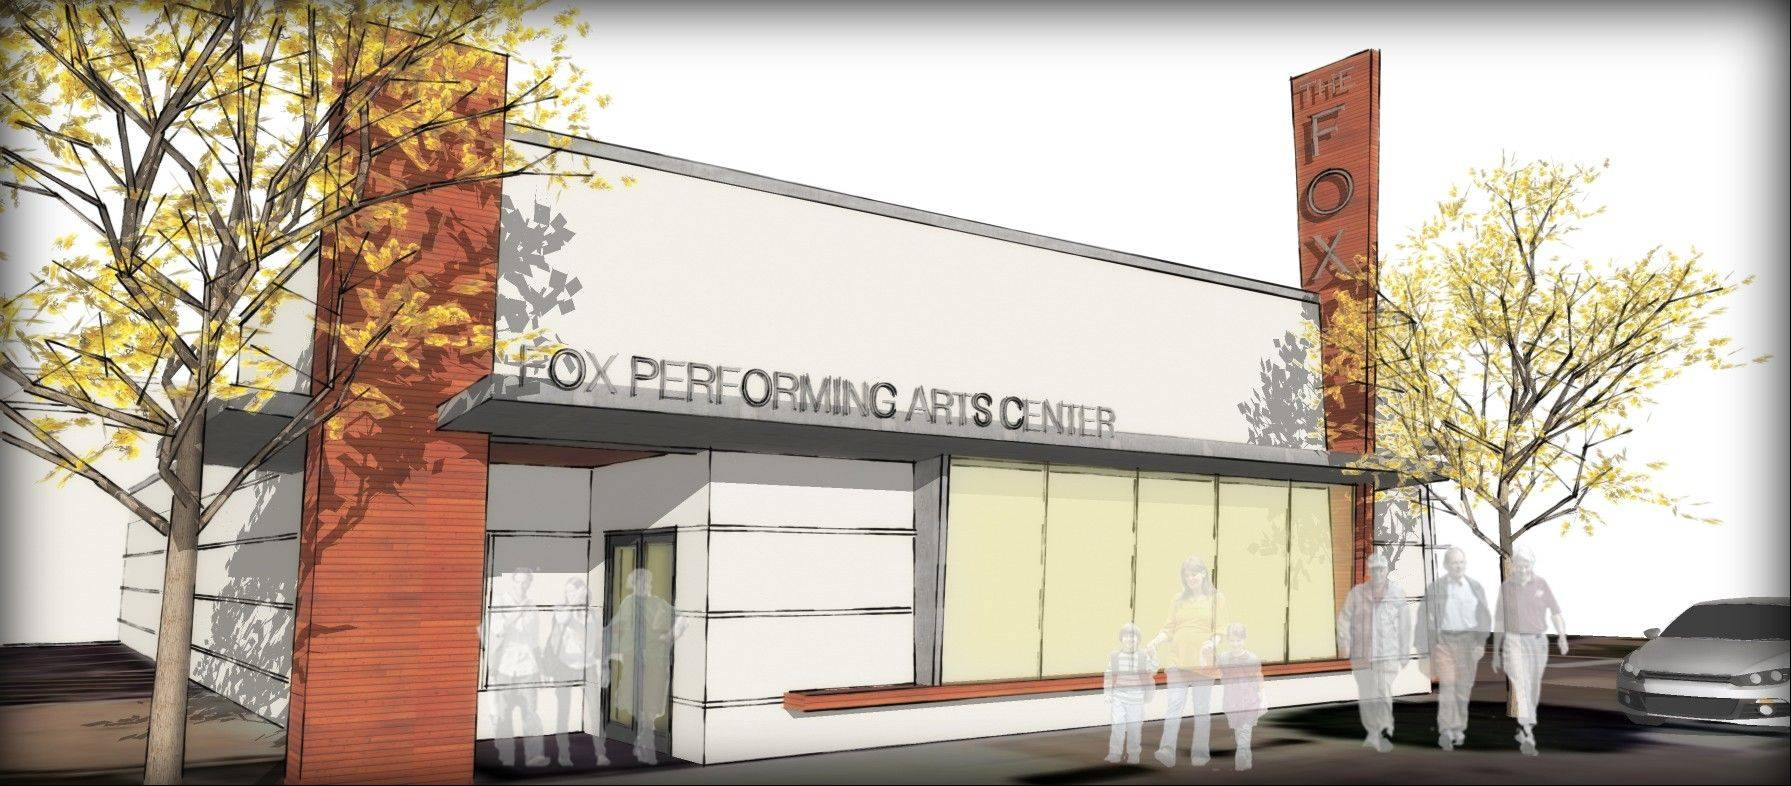 This is a rendering of what the old Ziegler's Ace Hardware store in West Dundee would look like if it's developed as the Fox Performing Arts Center.